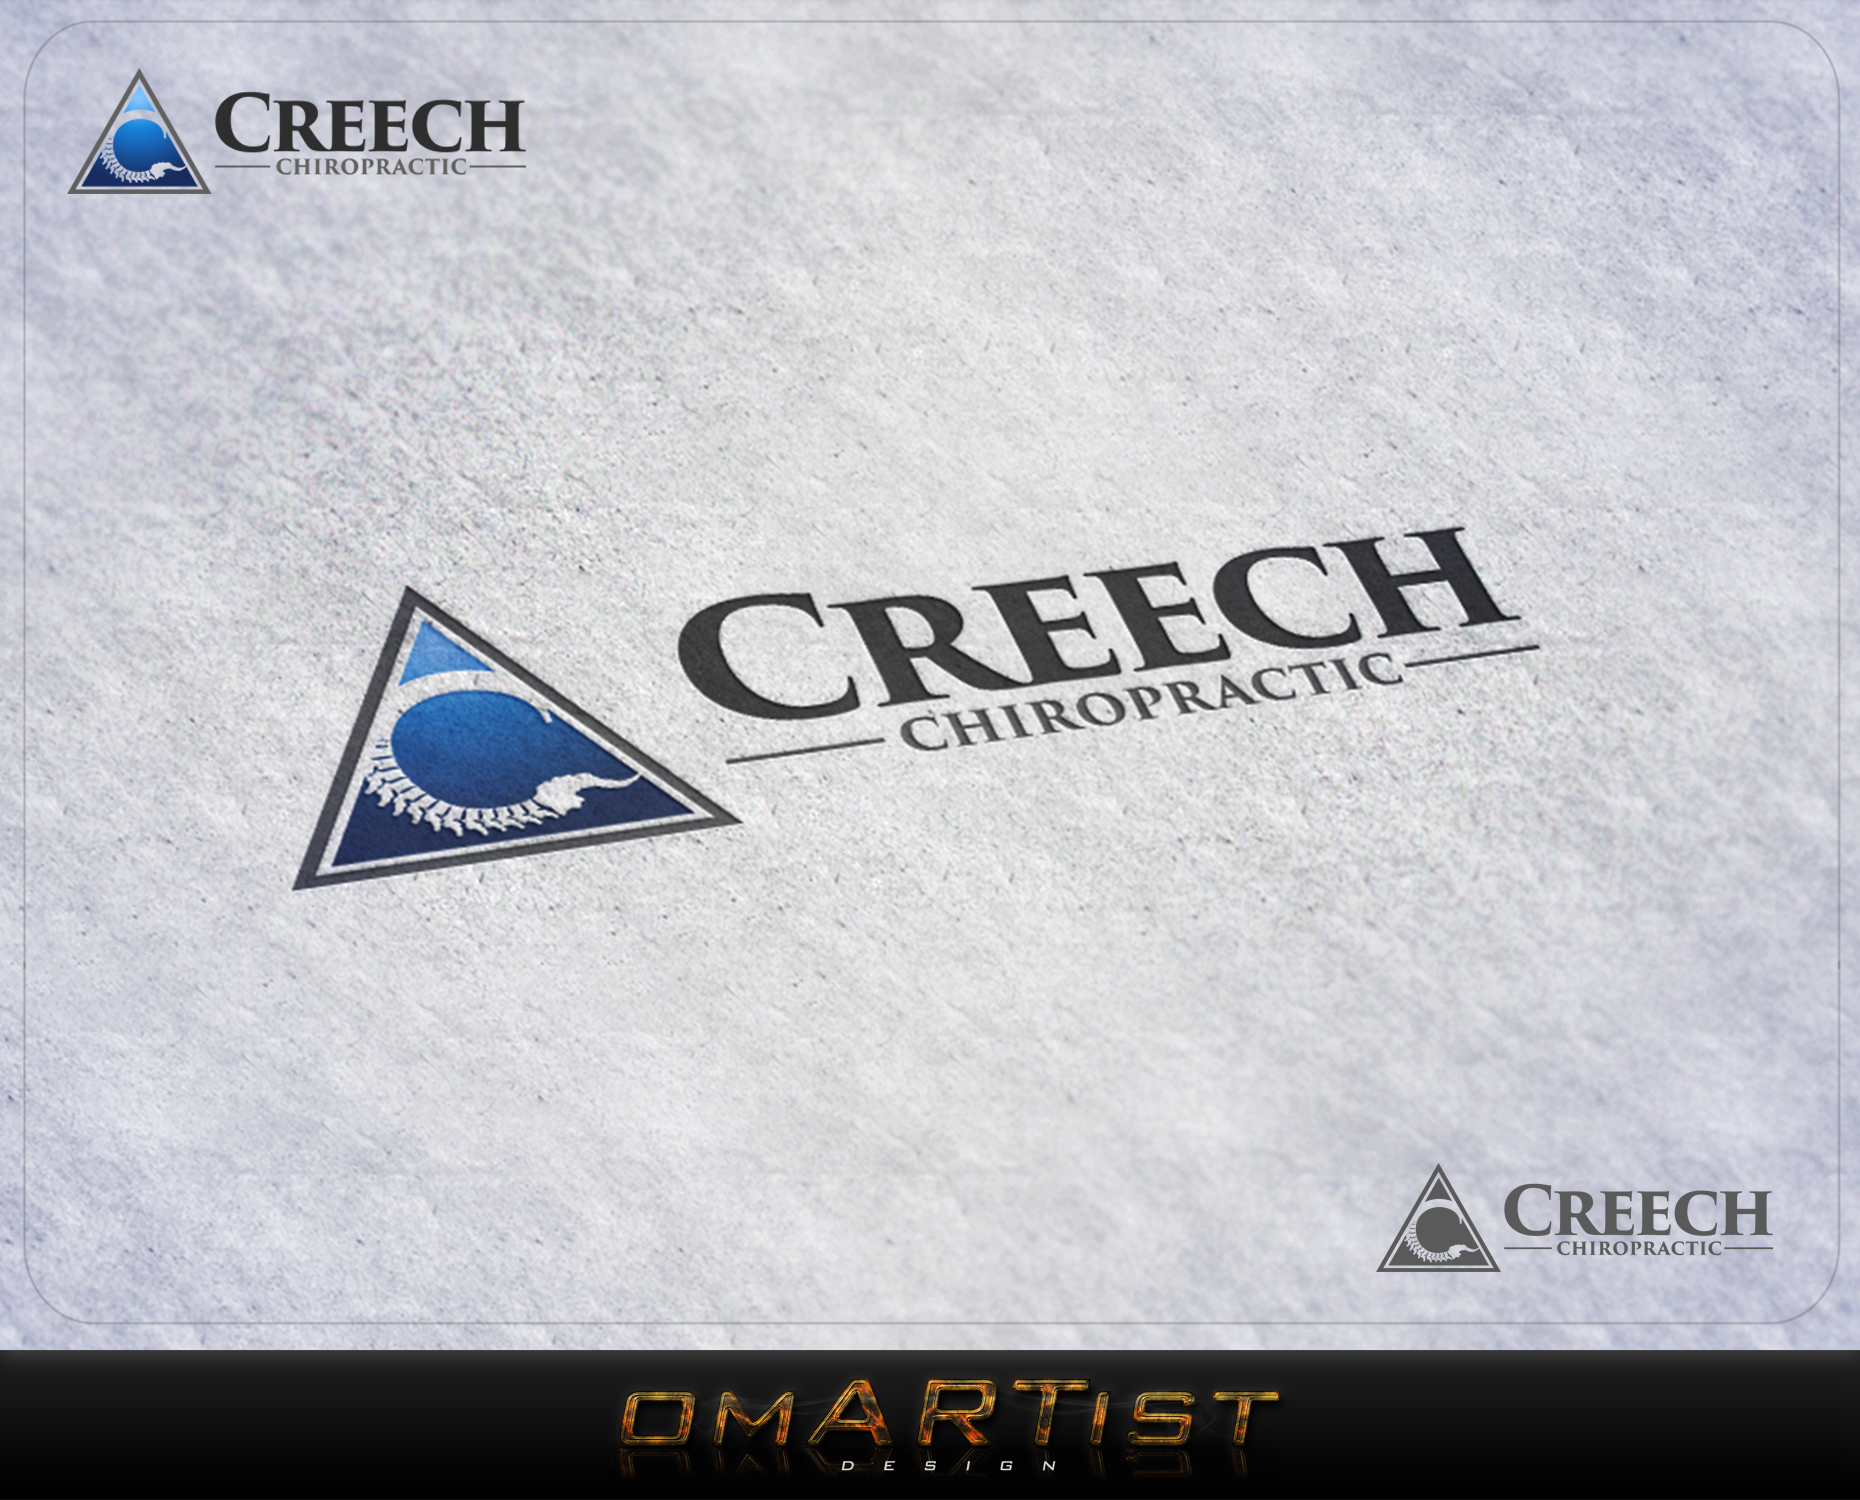 Logo Design by omARTist - Entry No. 15 in the Logo Design Contest Imaginative Logo Design for Creech Chiropractic.